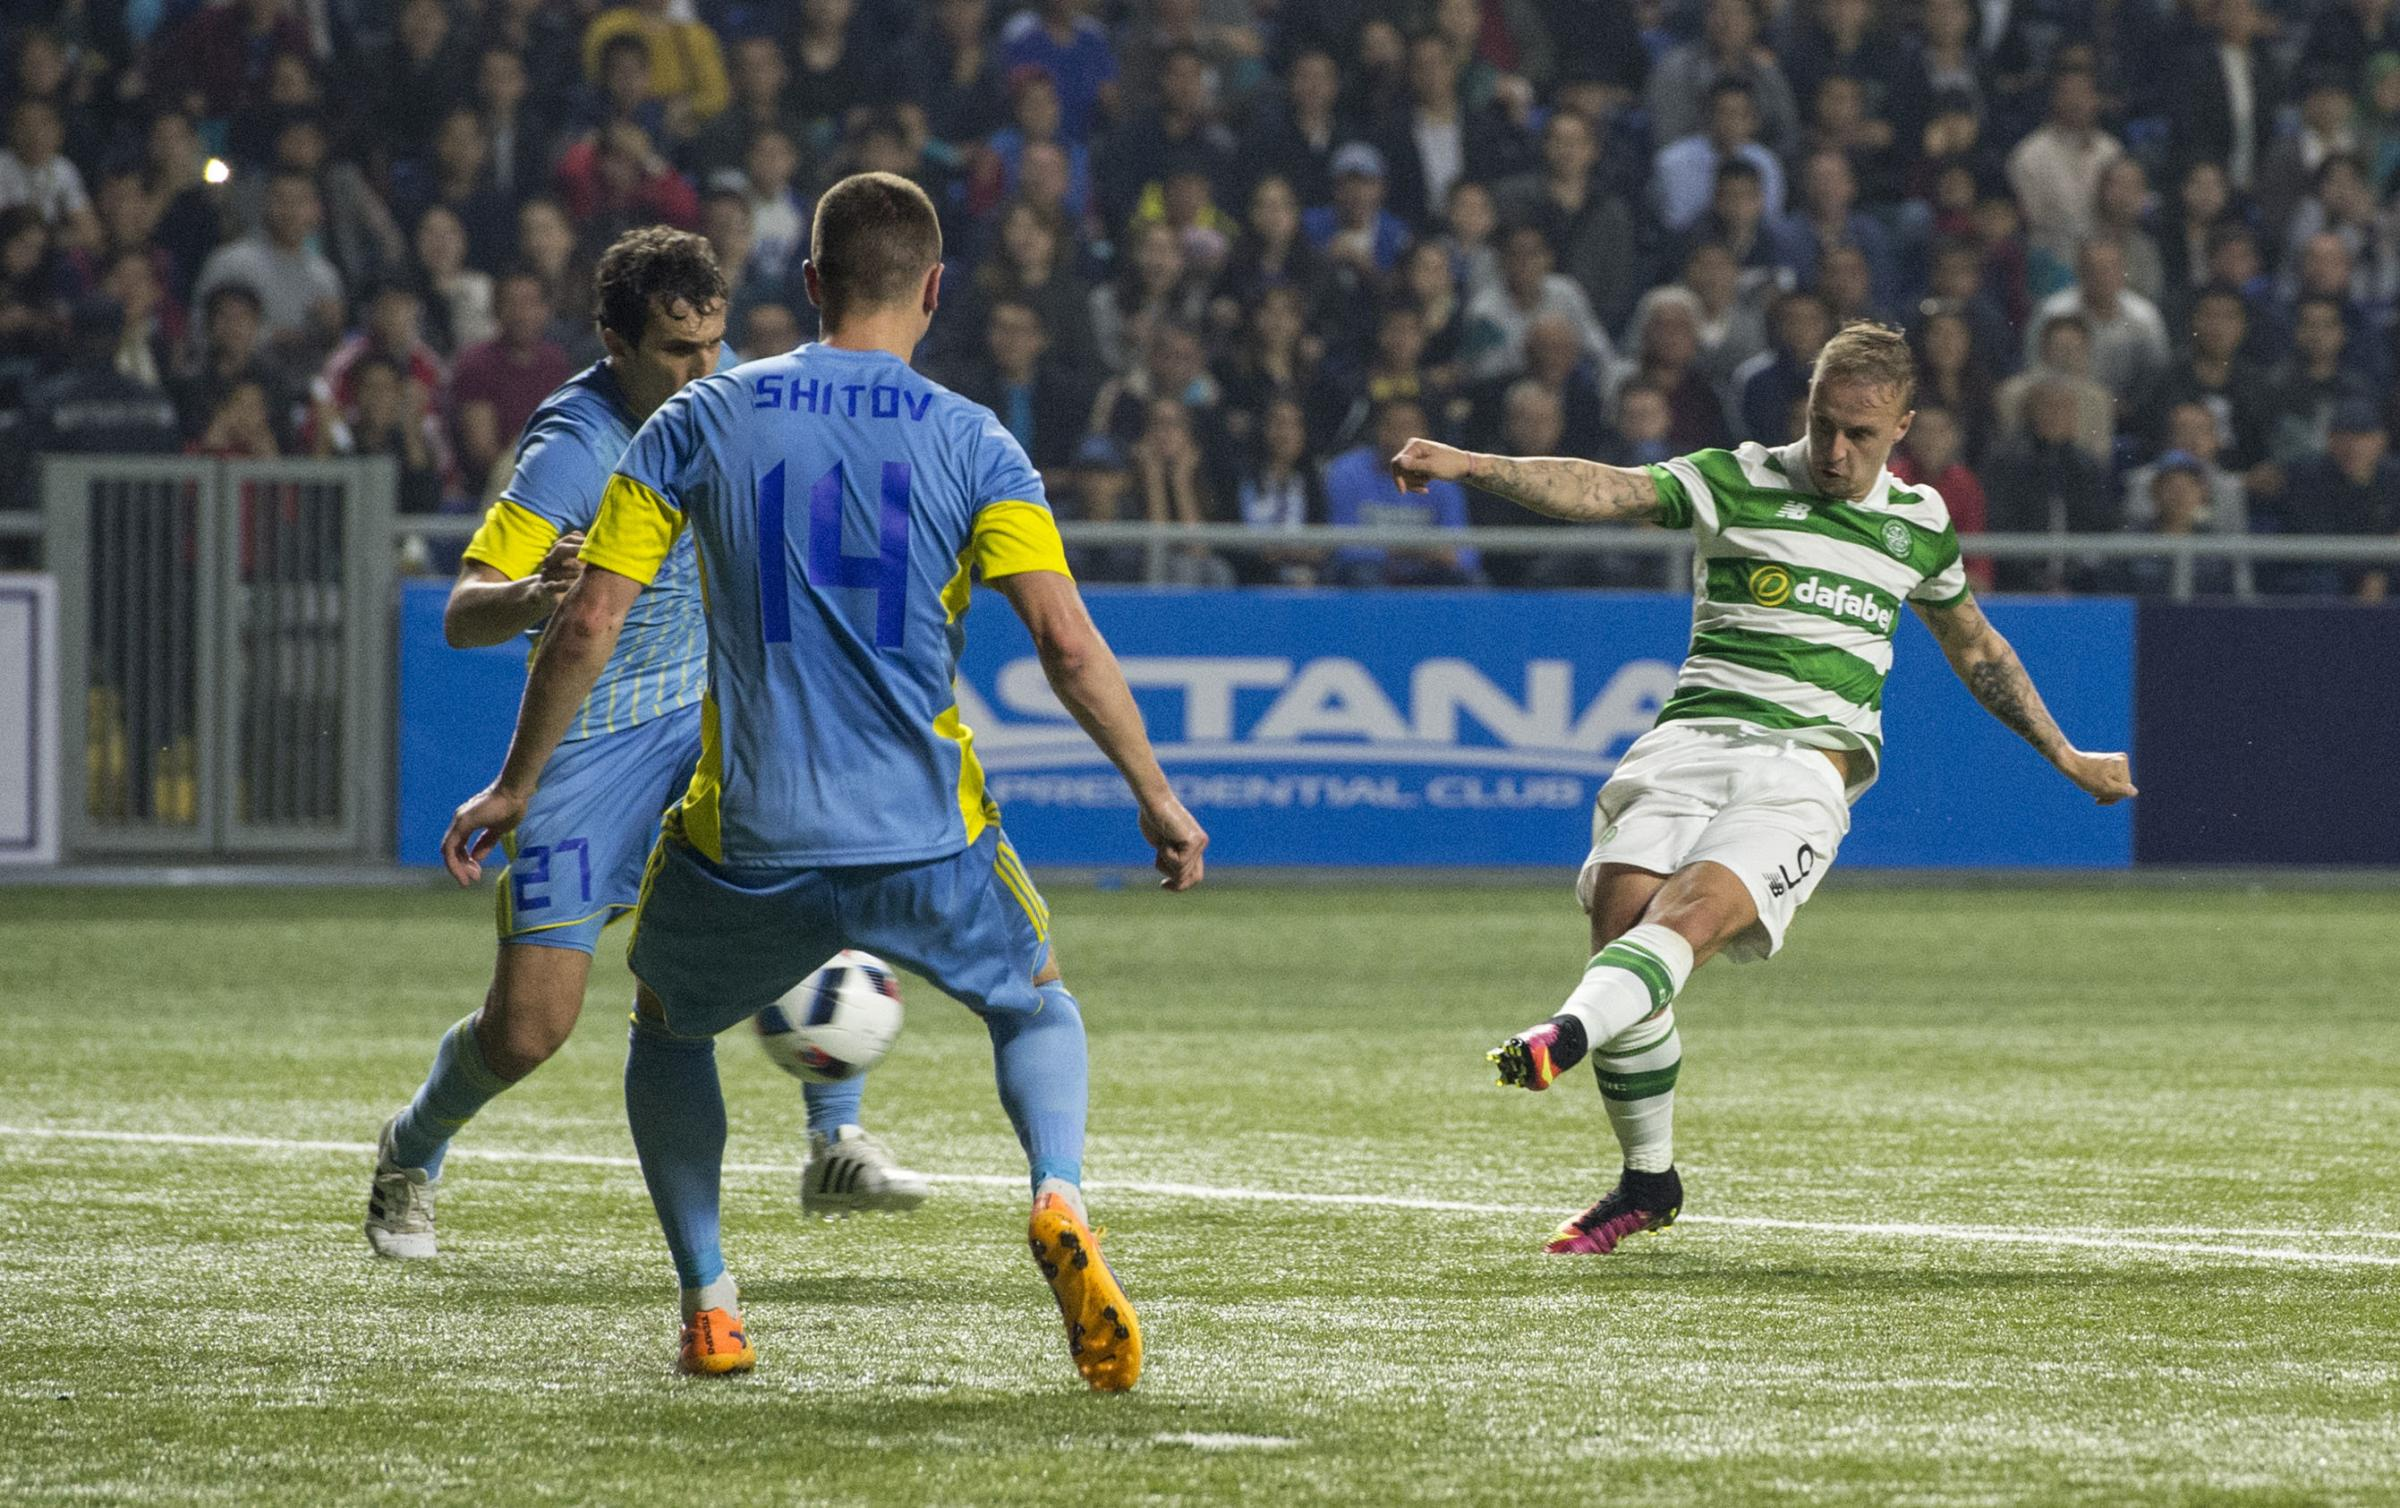 Celtic qualified for the Champions League group stages on the artificial turf of the Astana Arena. Pic: Getty